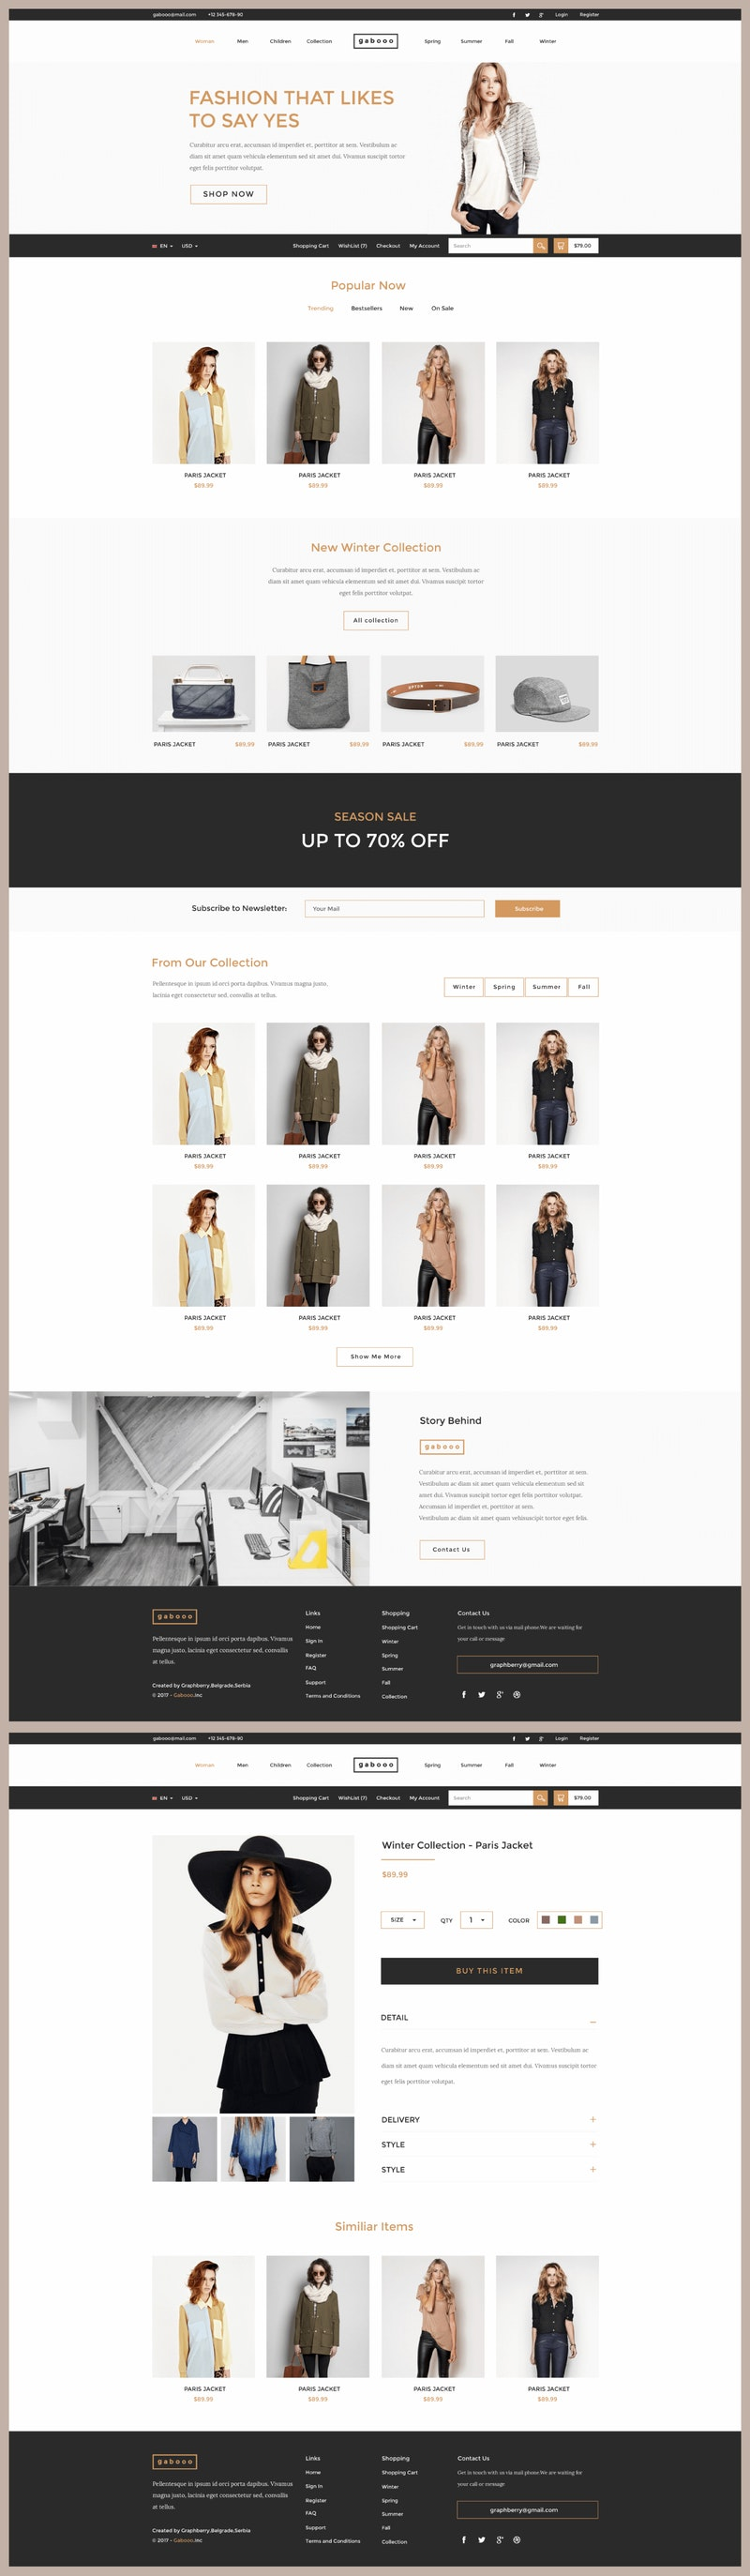 Gabooo - Fashion eCommerce Theme preview